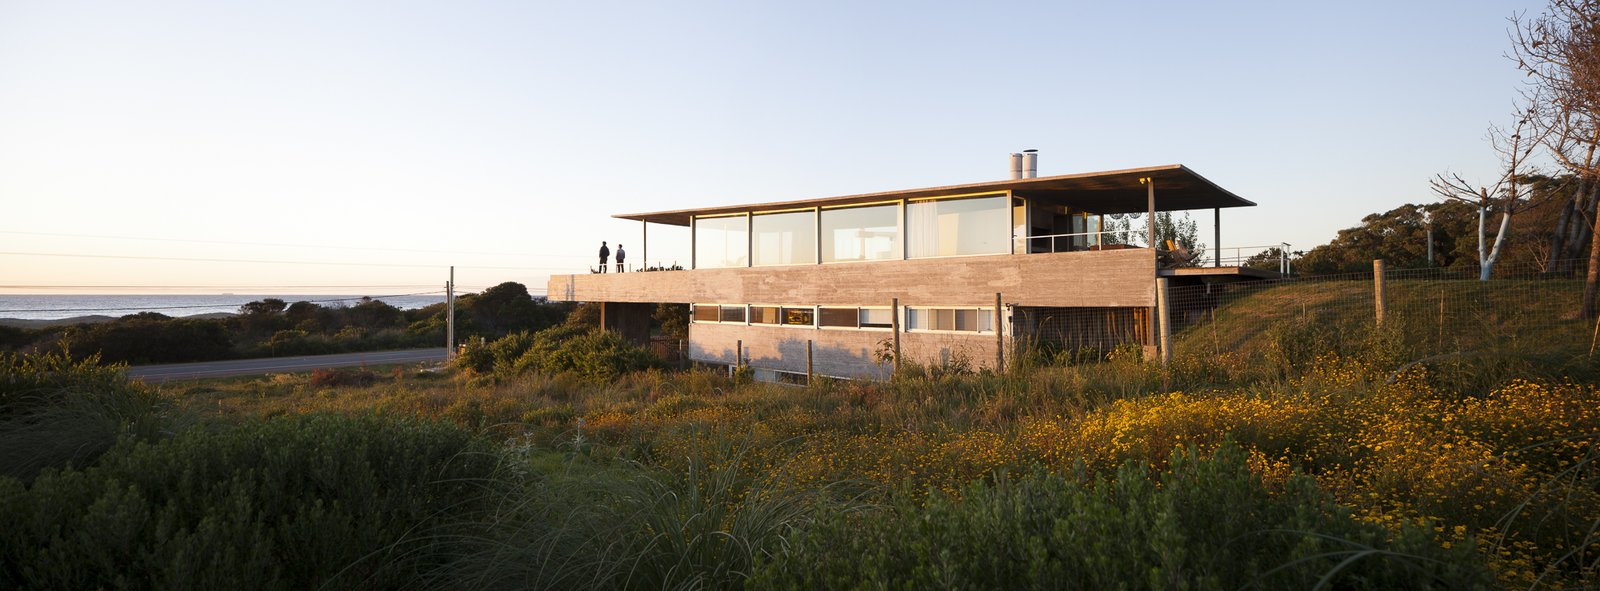 Exterior, Concrete Siding Material, Beach House Building Type, Flat RoofLine, and House Building Type Three bedrooms and bathrooms are located on the first level. Each room can adapt to accommodate a varying number of occupants.  Photo 2 of 12 in A Concrete Abode in Uruguay Embraces its Beachfront Setting